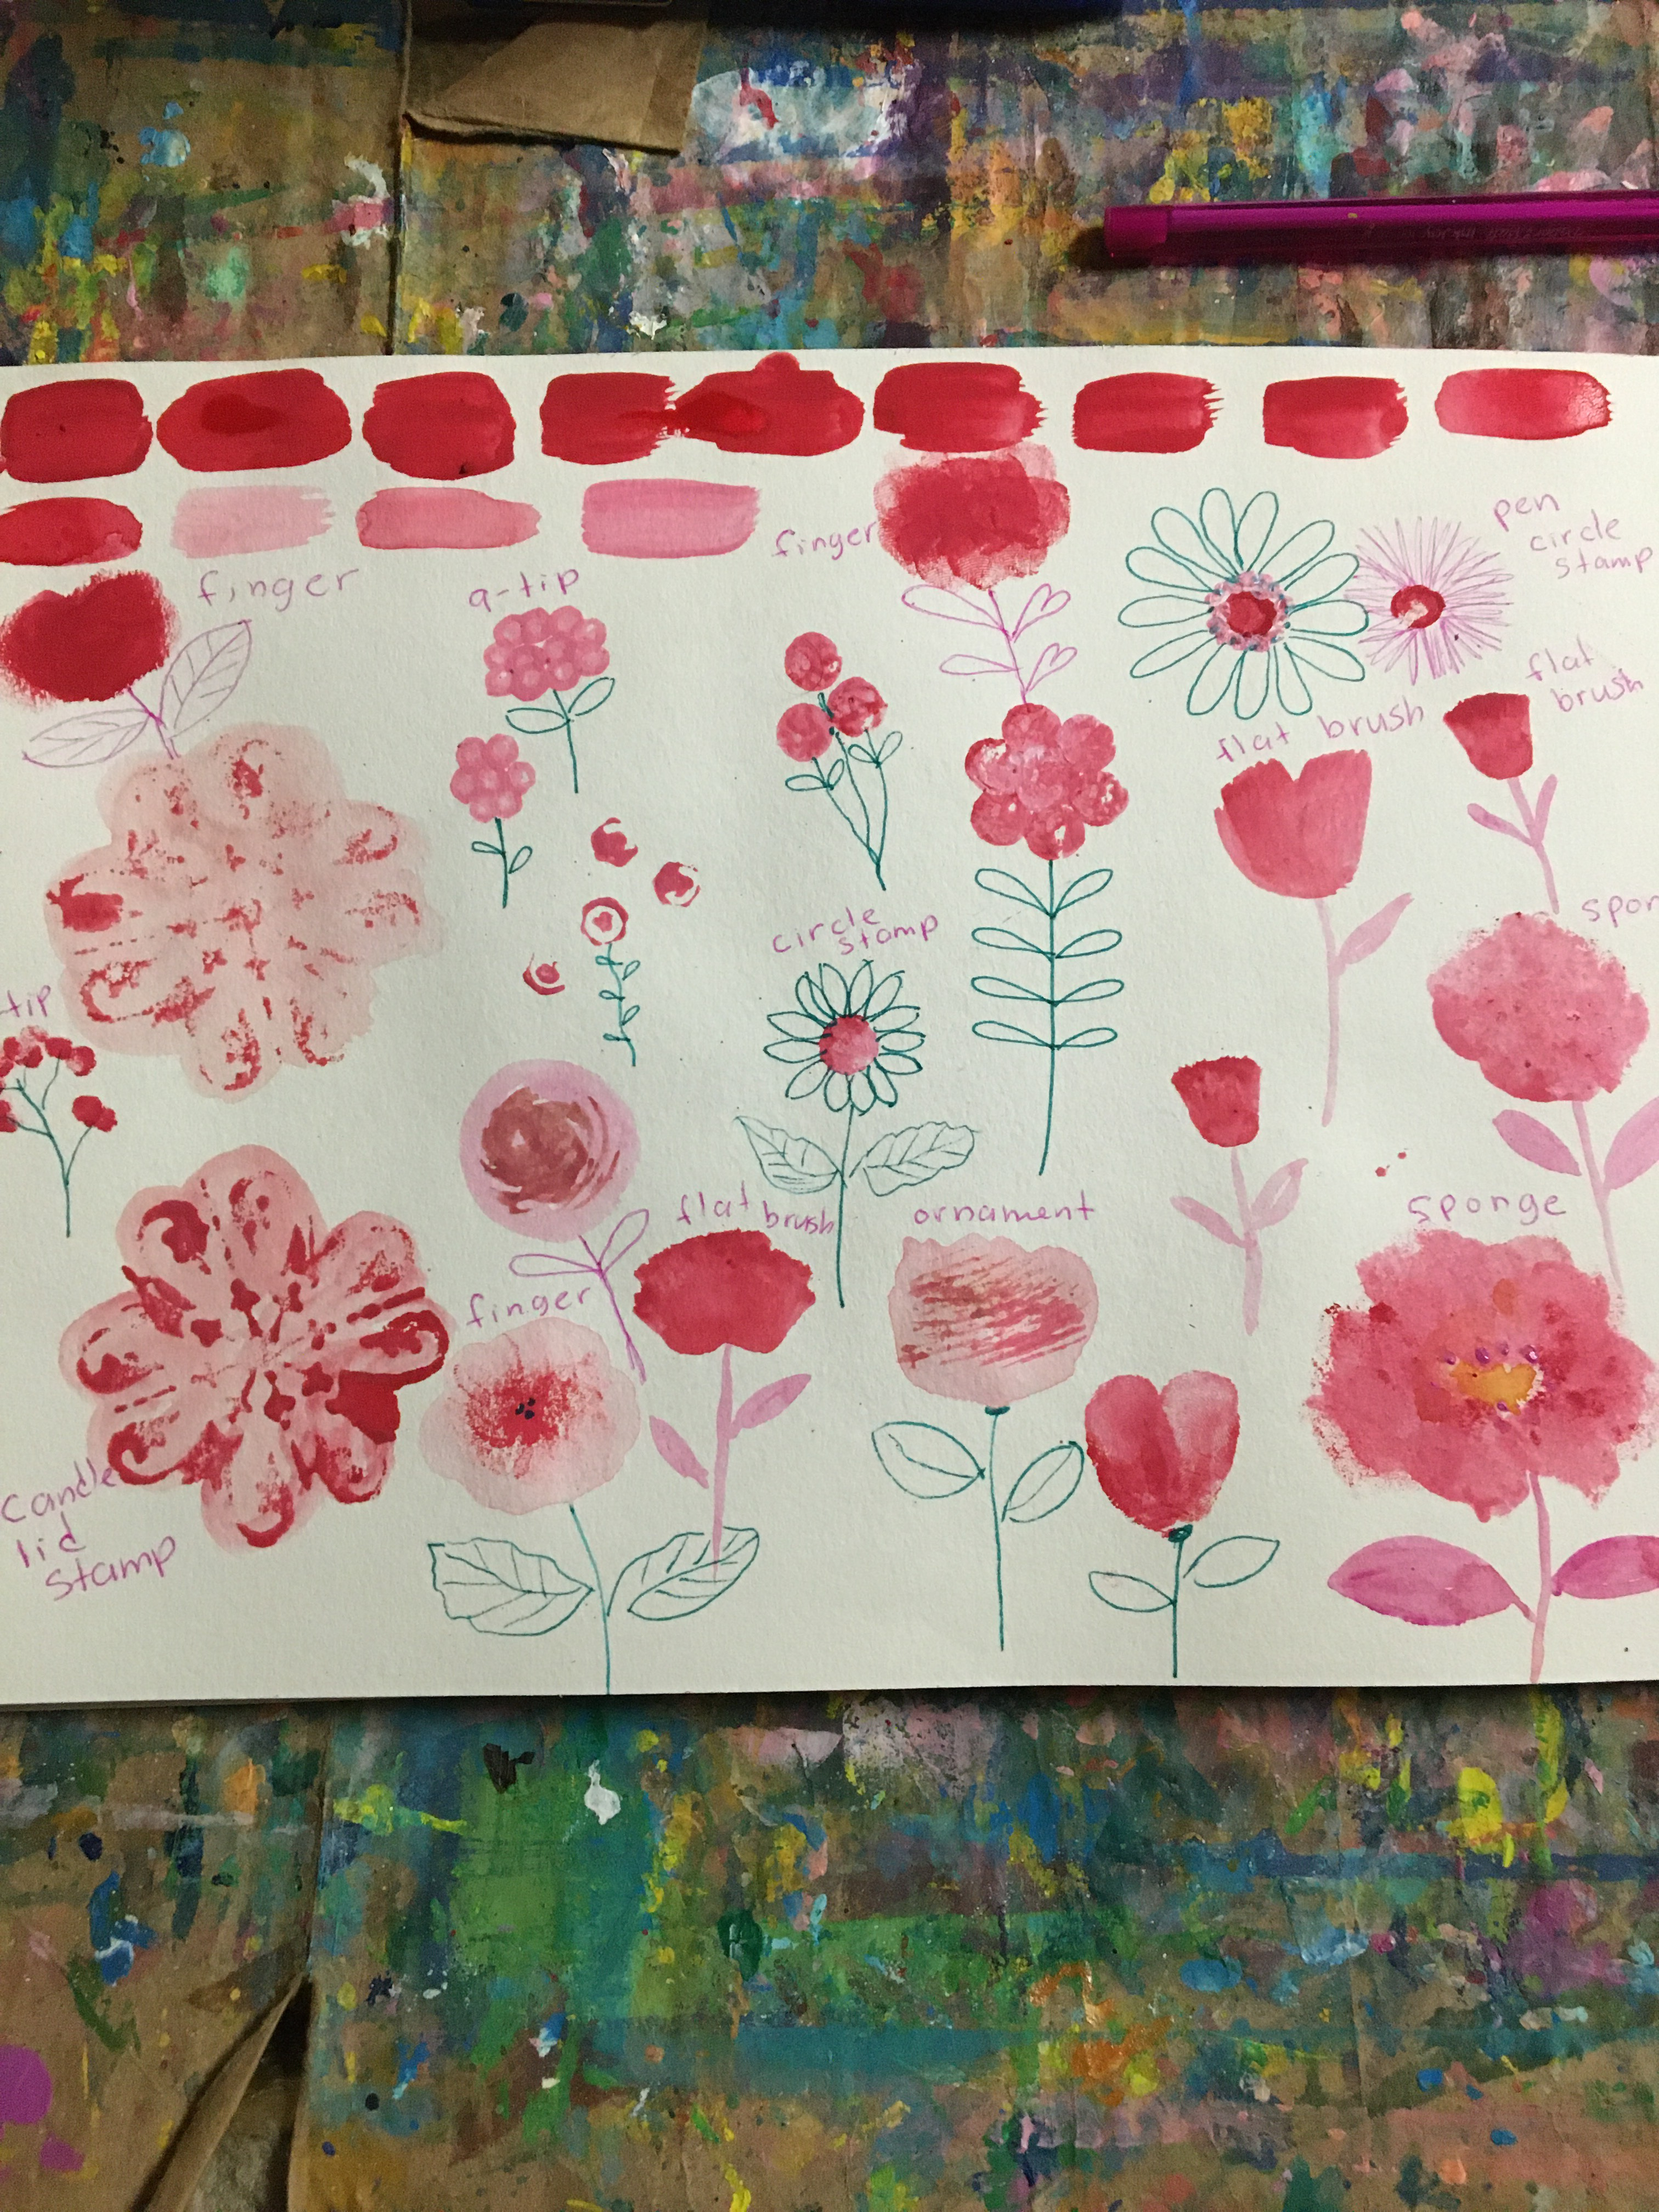 Use red paint to sketch flowers. Stamp with random objects